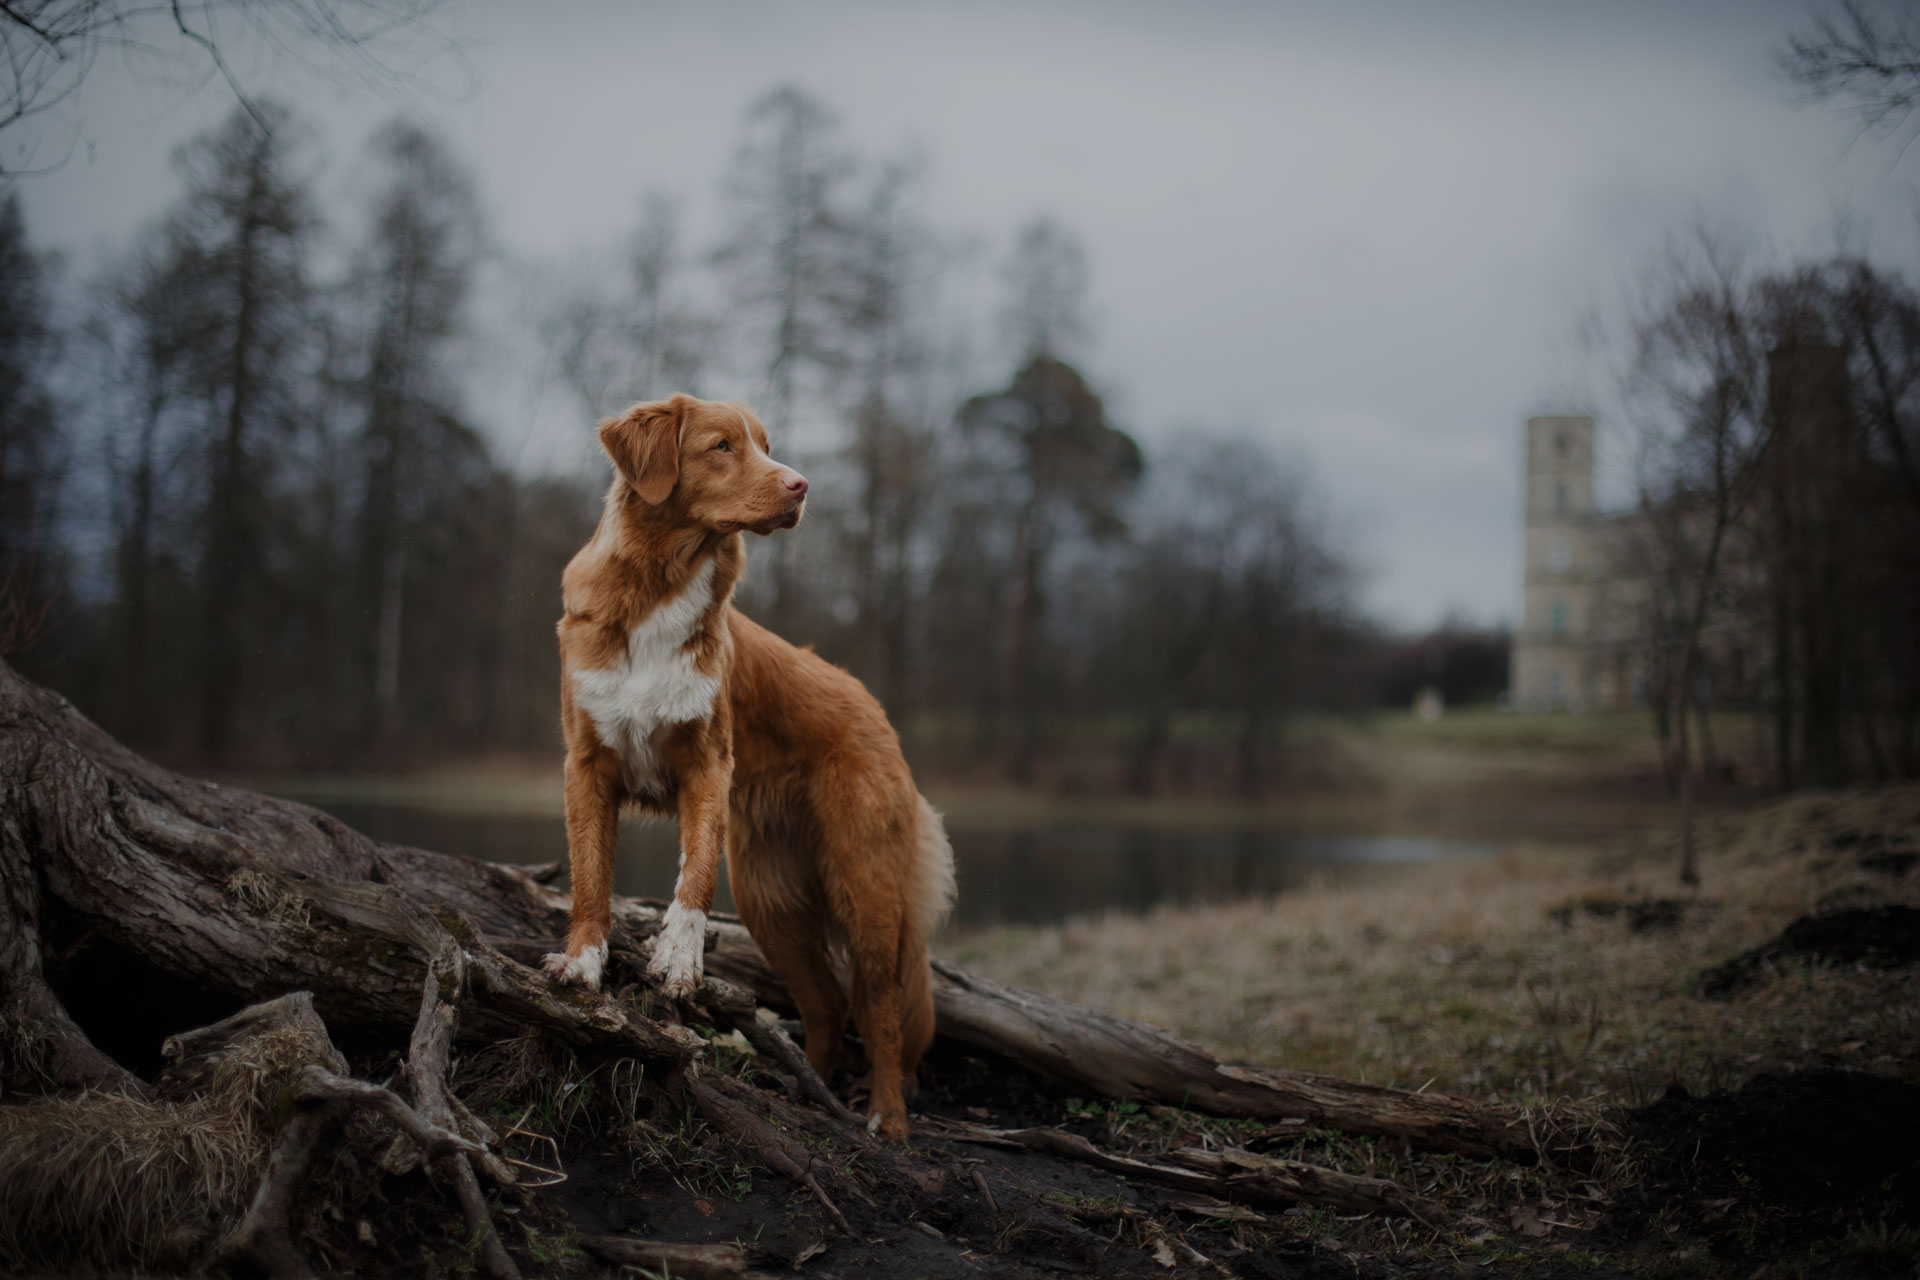 Nova Scotia Duck Tolling Retriever dog in the park